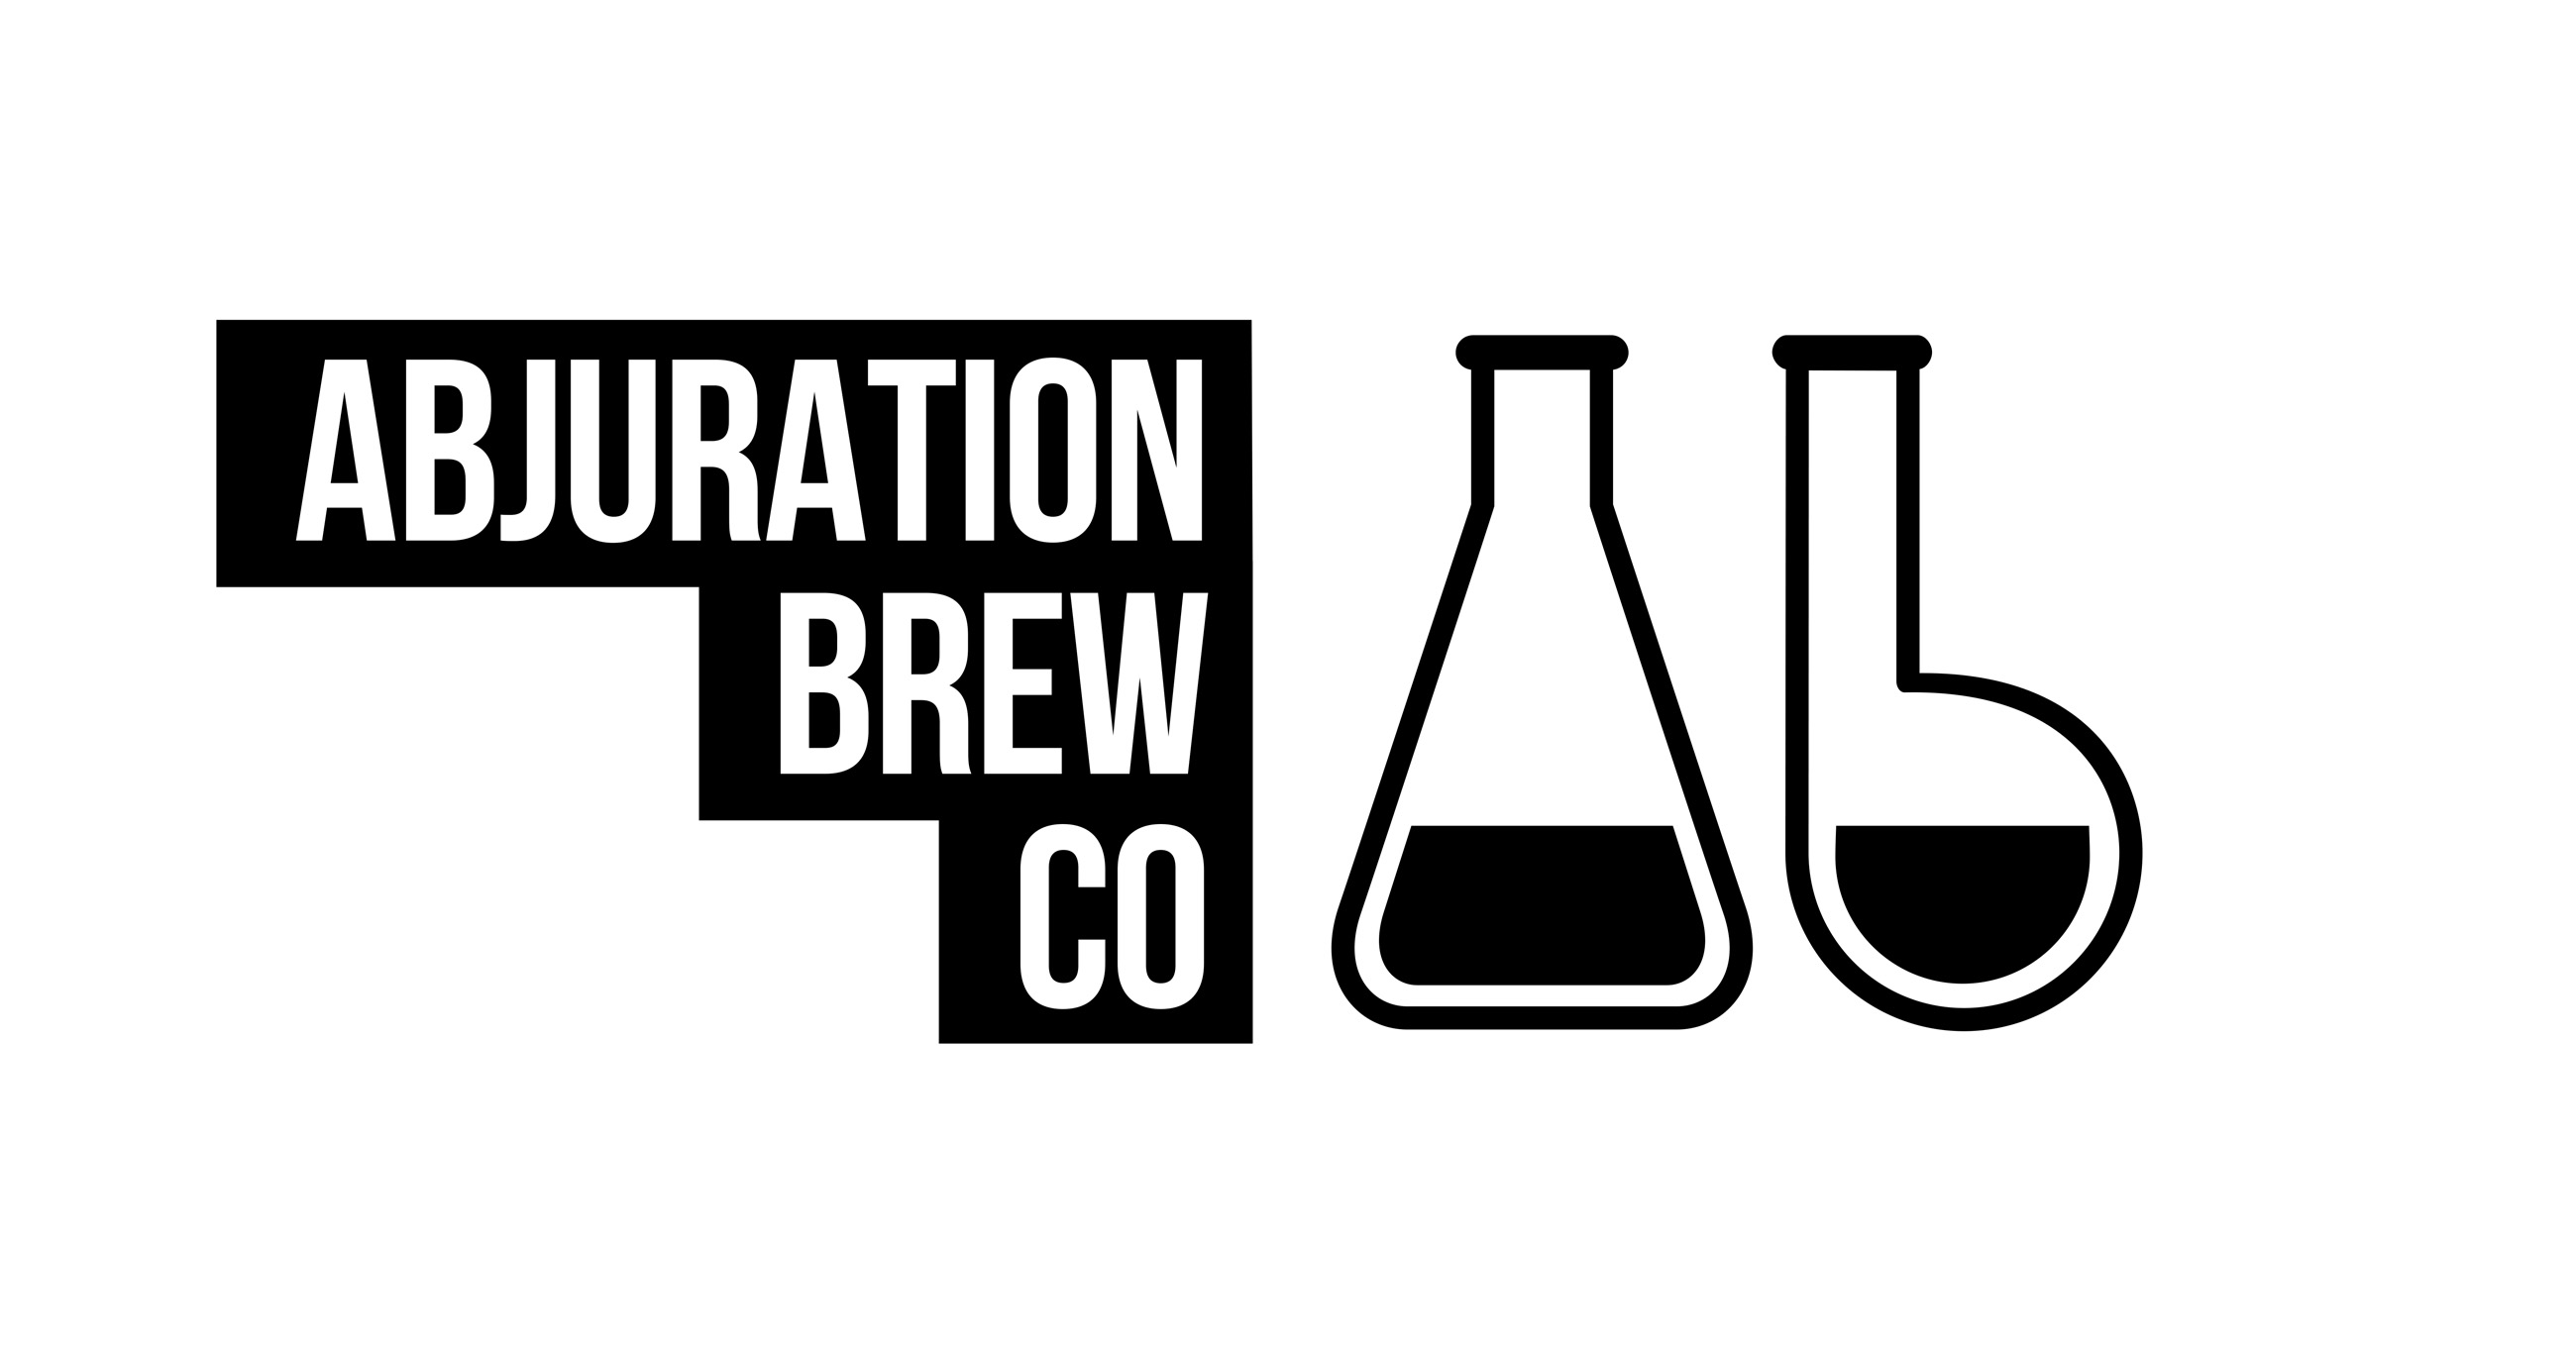 logoBeers-2 The logo for Abjuration Brewing Co., which aims to open by early next year in the Parkway Theater in McKees Rocks.